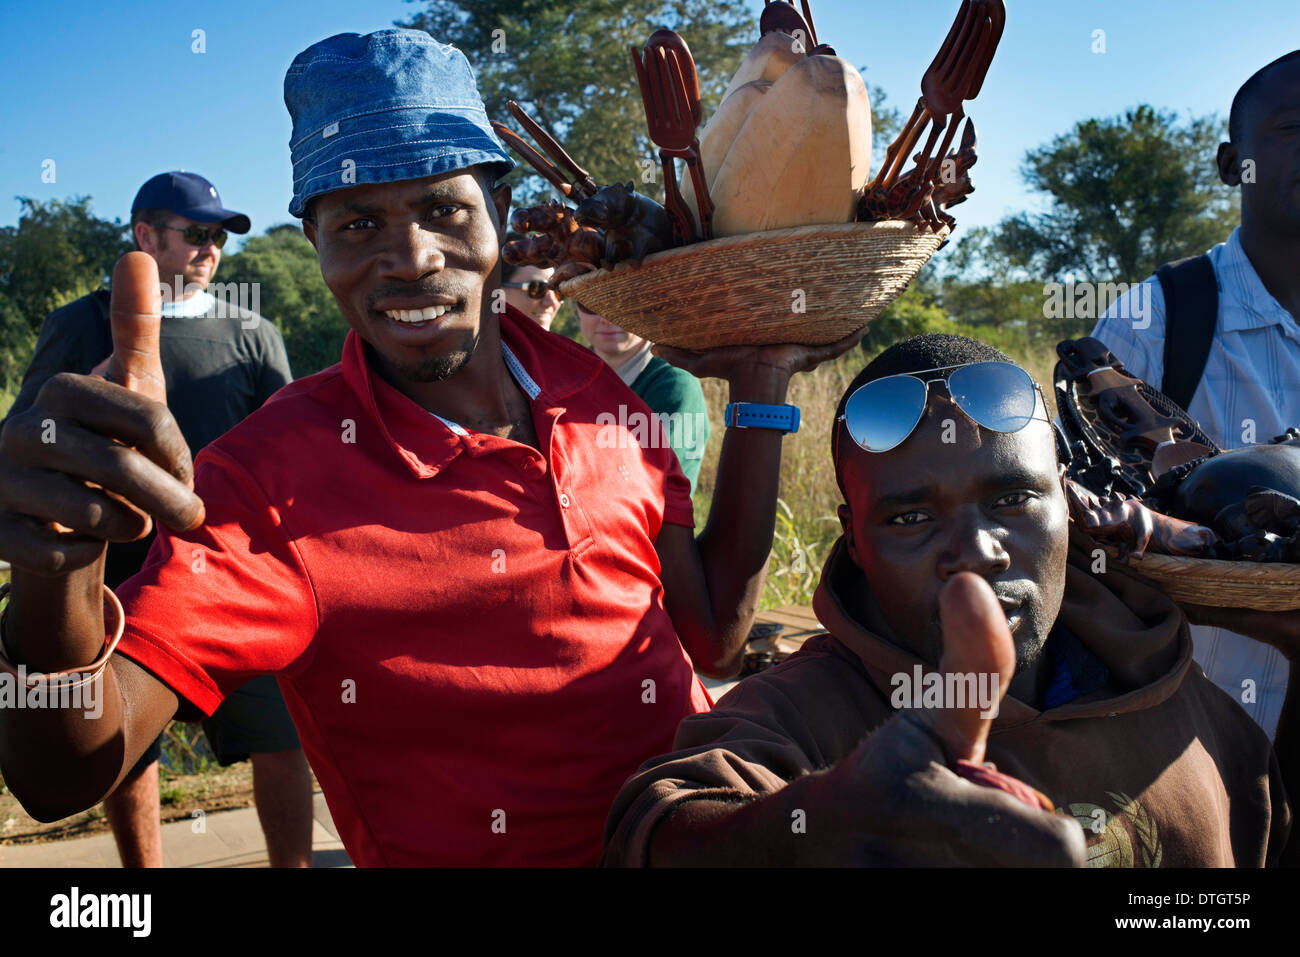 Craft vendors on the border between Botswana and Zambia. From Victoria Falls is possible to visit the nearby Botswana. - Stock Image